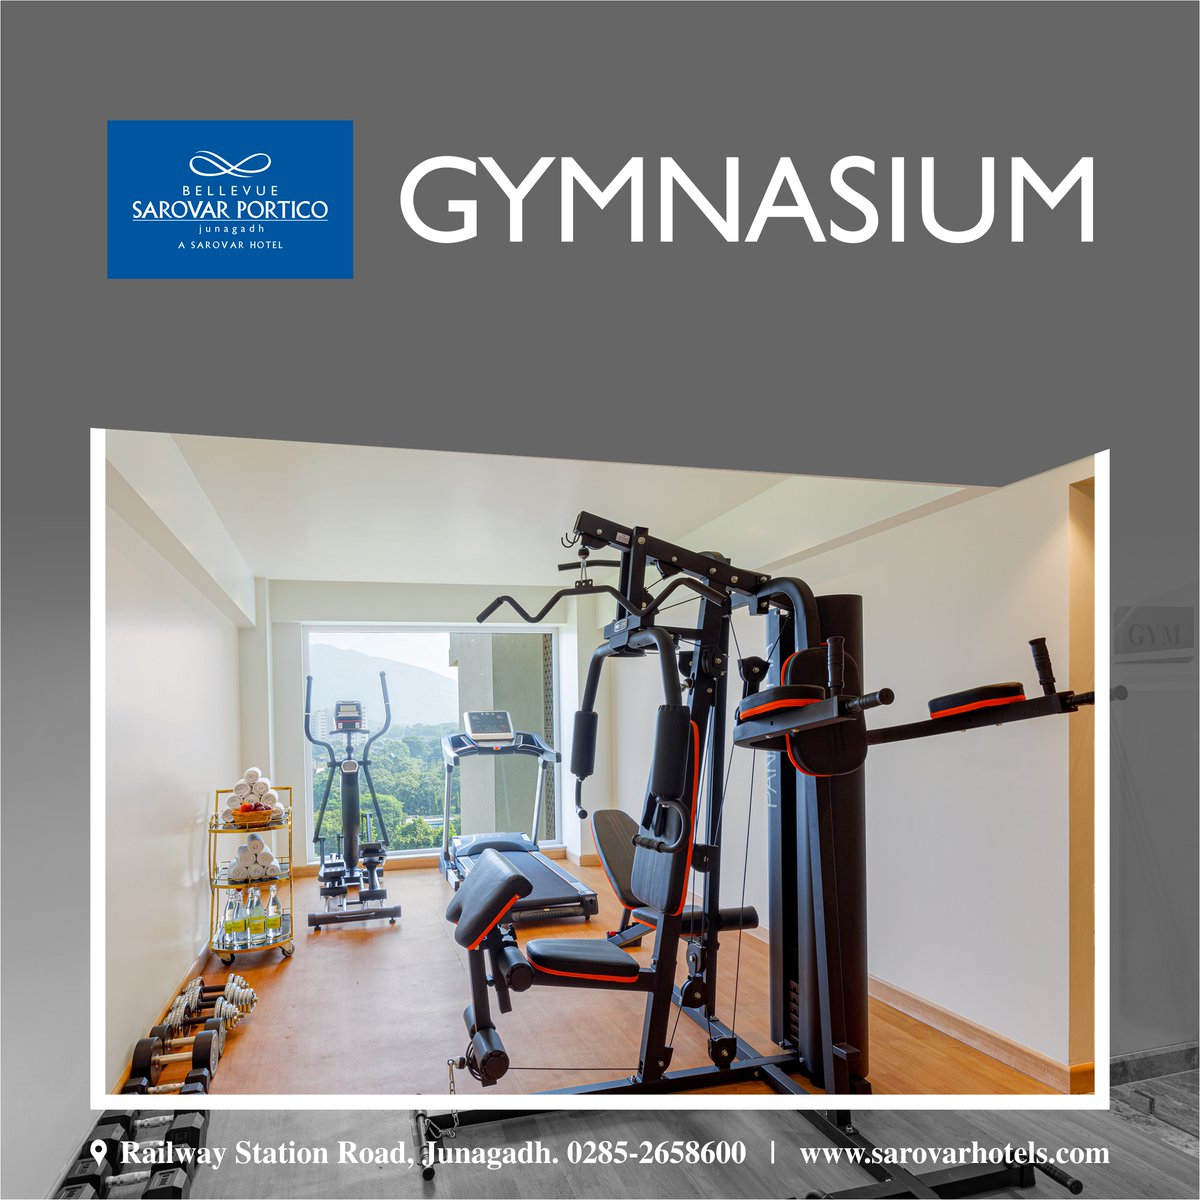 Today, the quality of a hotel gym is becoming increasingly important to travelers, and the hospitality industry has responded by building better fitness centers for guests. Our gym is equipped with a complete range of Life Fitness weight training and exercise equipment. <br>http://pic.twitter.com/rUjy27P6rB